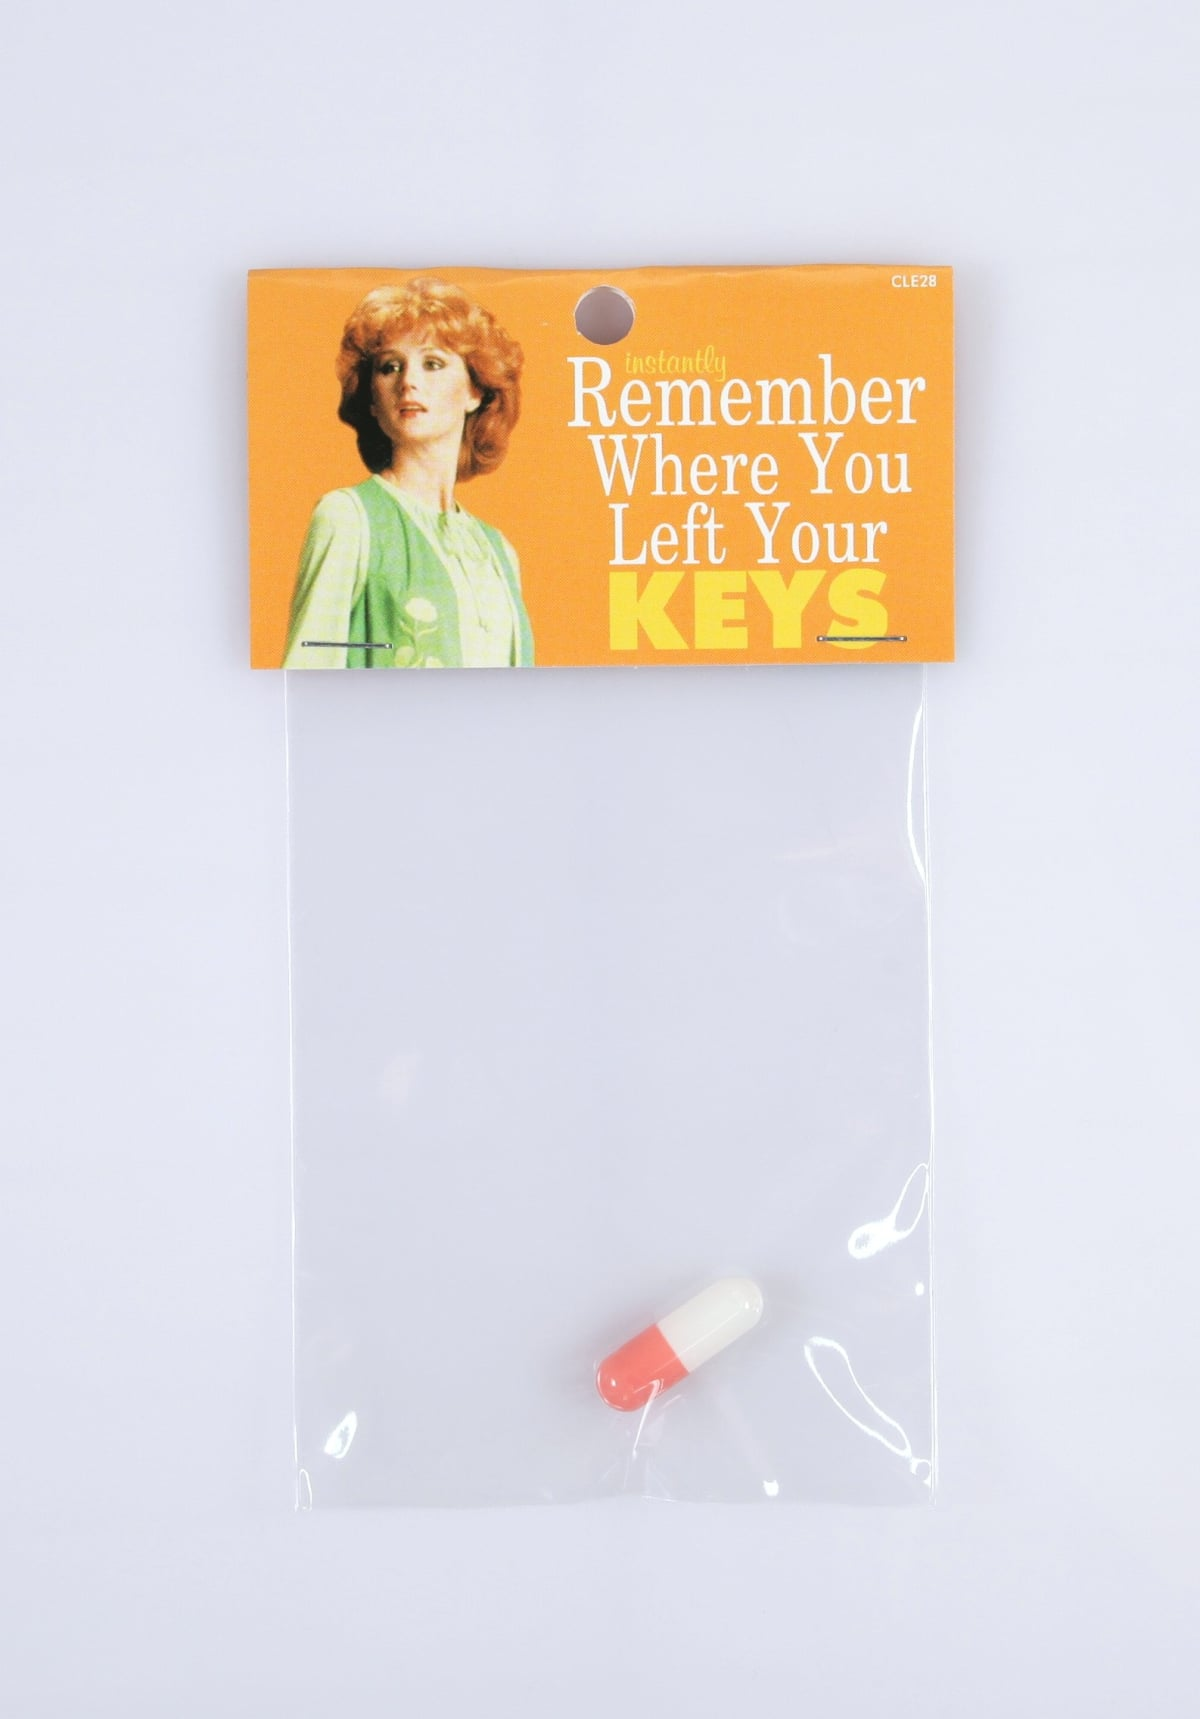 Remember where you left your keys